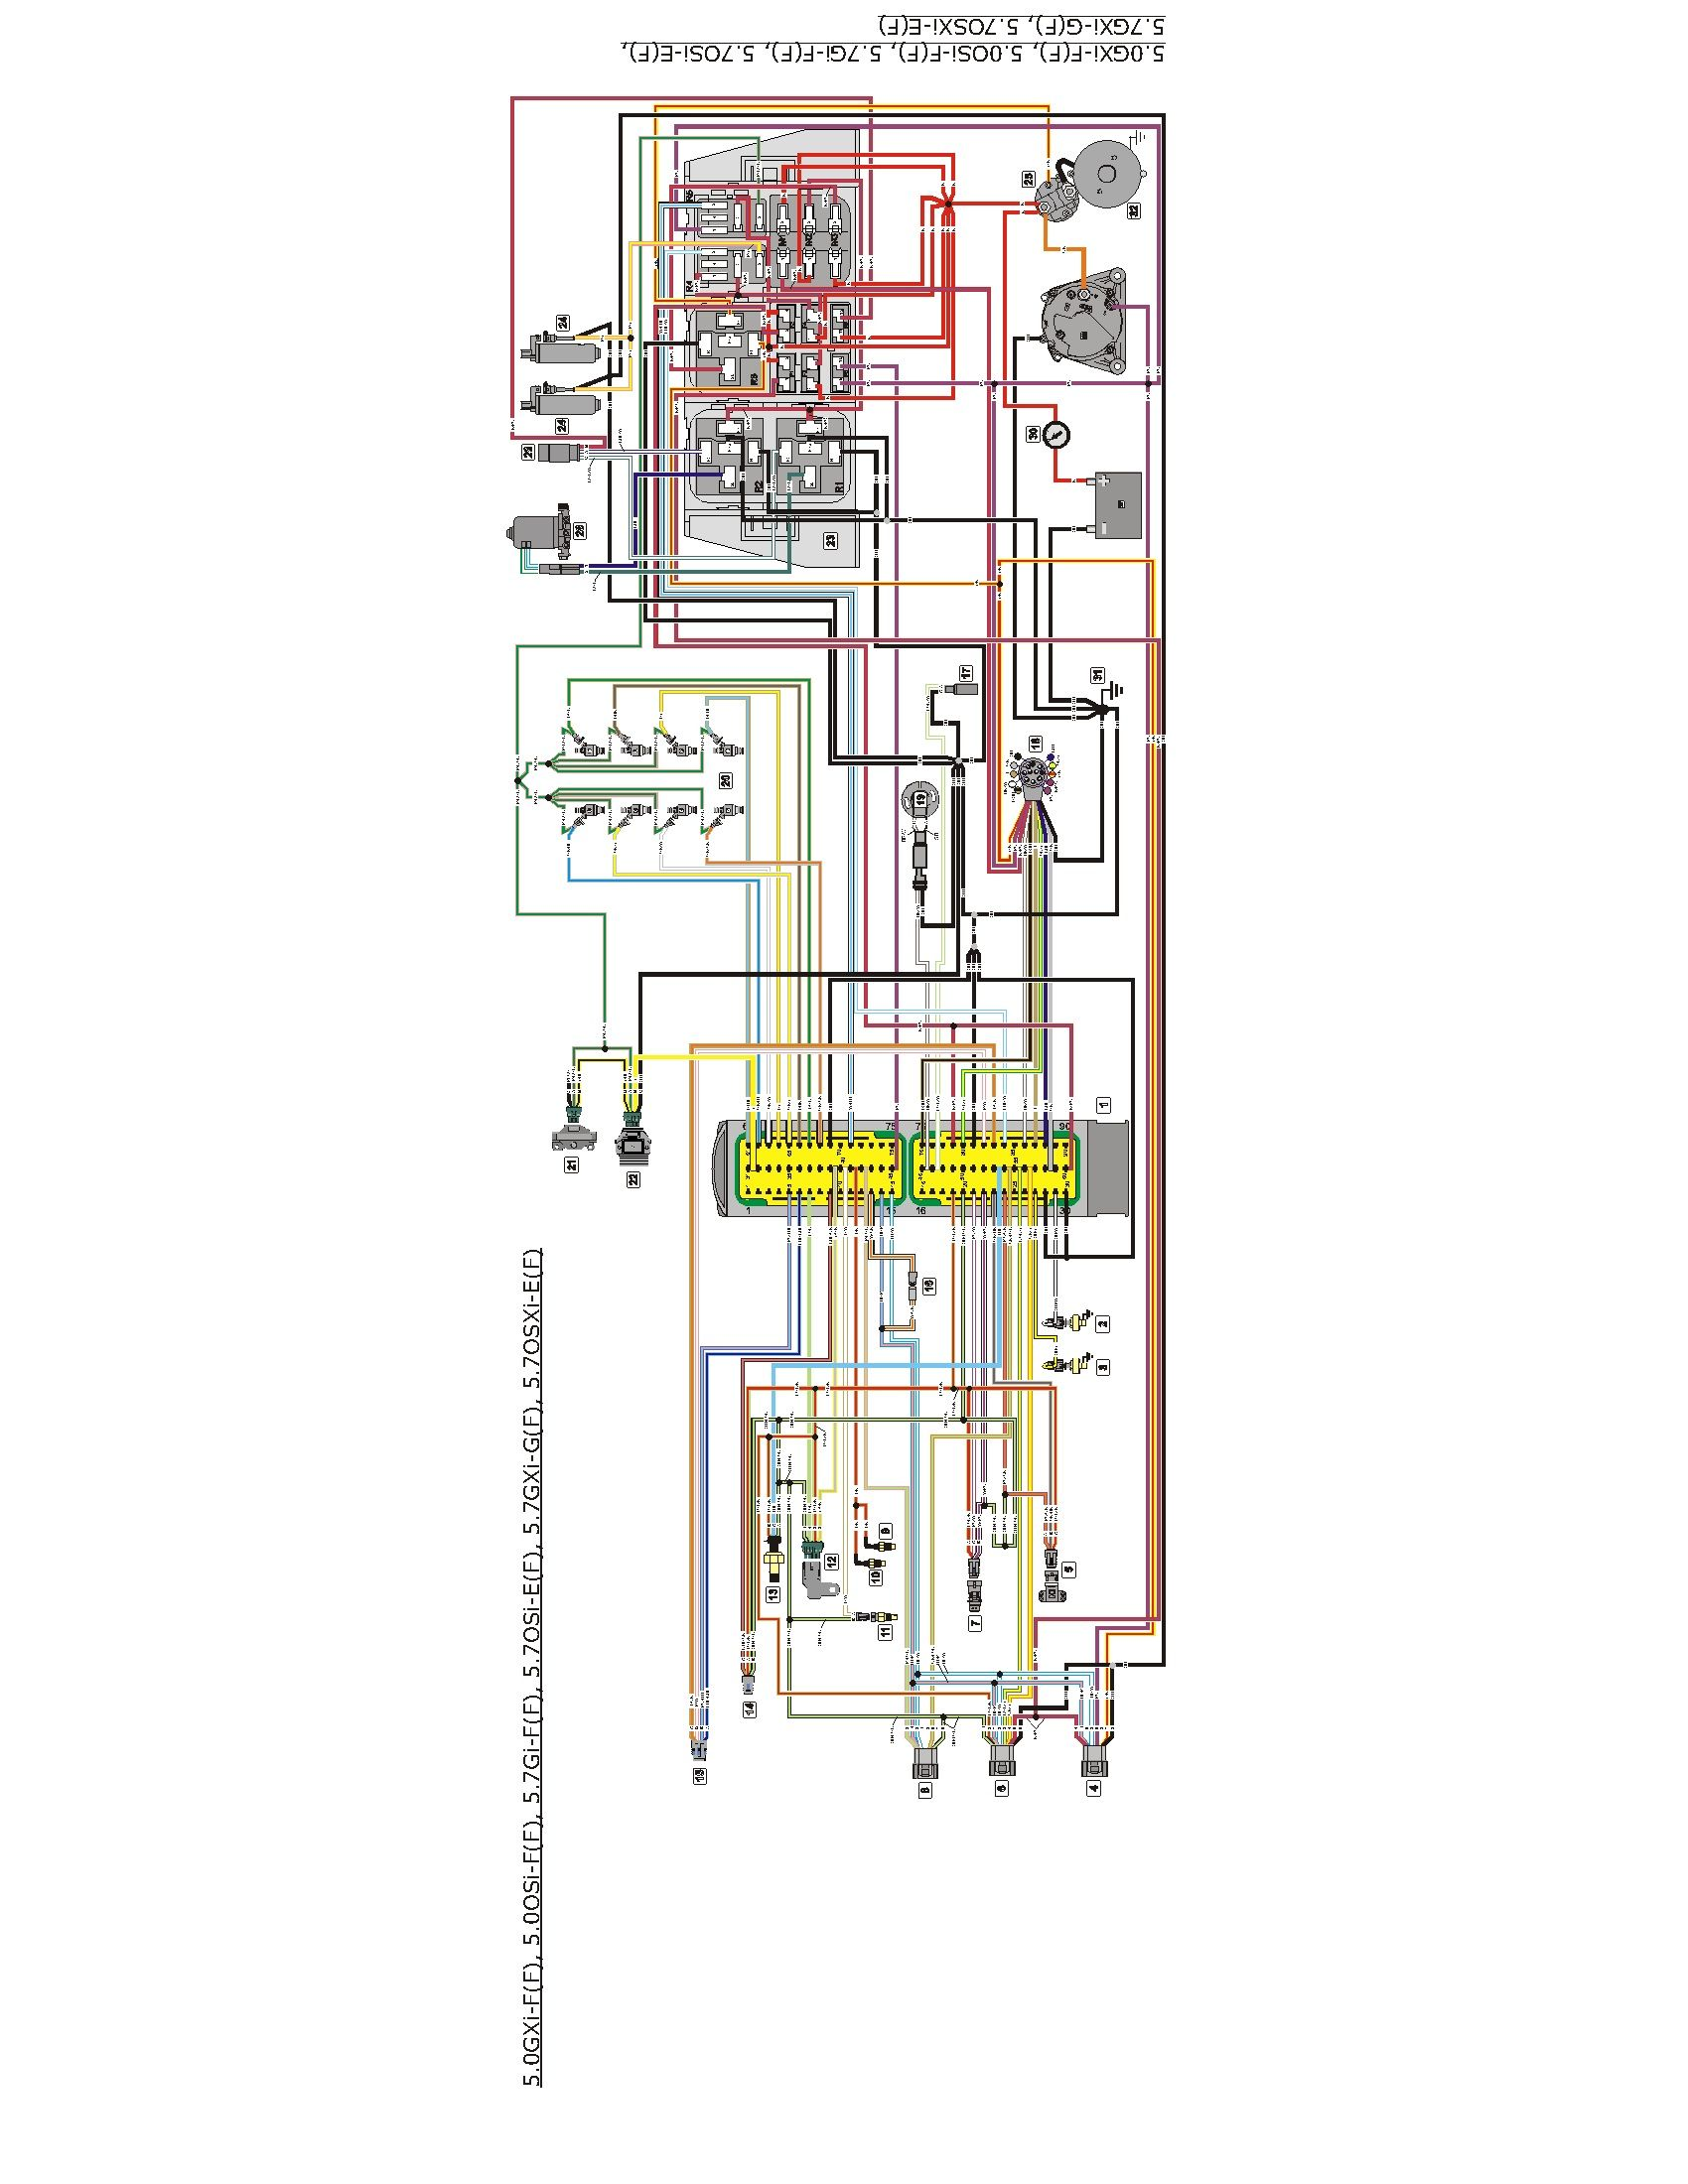 mercruiser trim sender wiring 16 wlj savic family de \u2022 Mercruiser Tachometer Wiring Diagram mercruiser trim sender wiring diagram download wiring diagram rh rhigosmemories org uk mercruiser alpha one trim sender wiring mercruiser alpha one trim